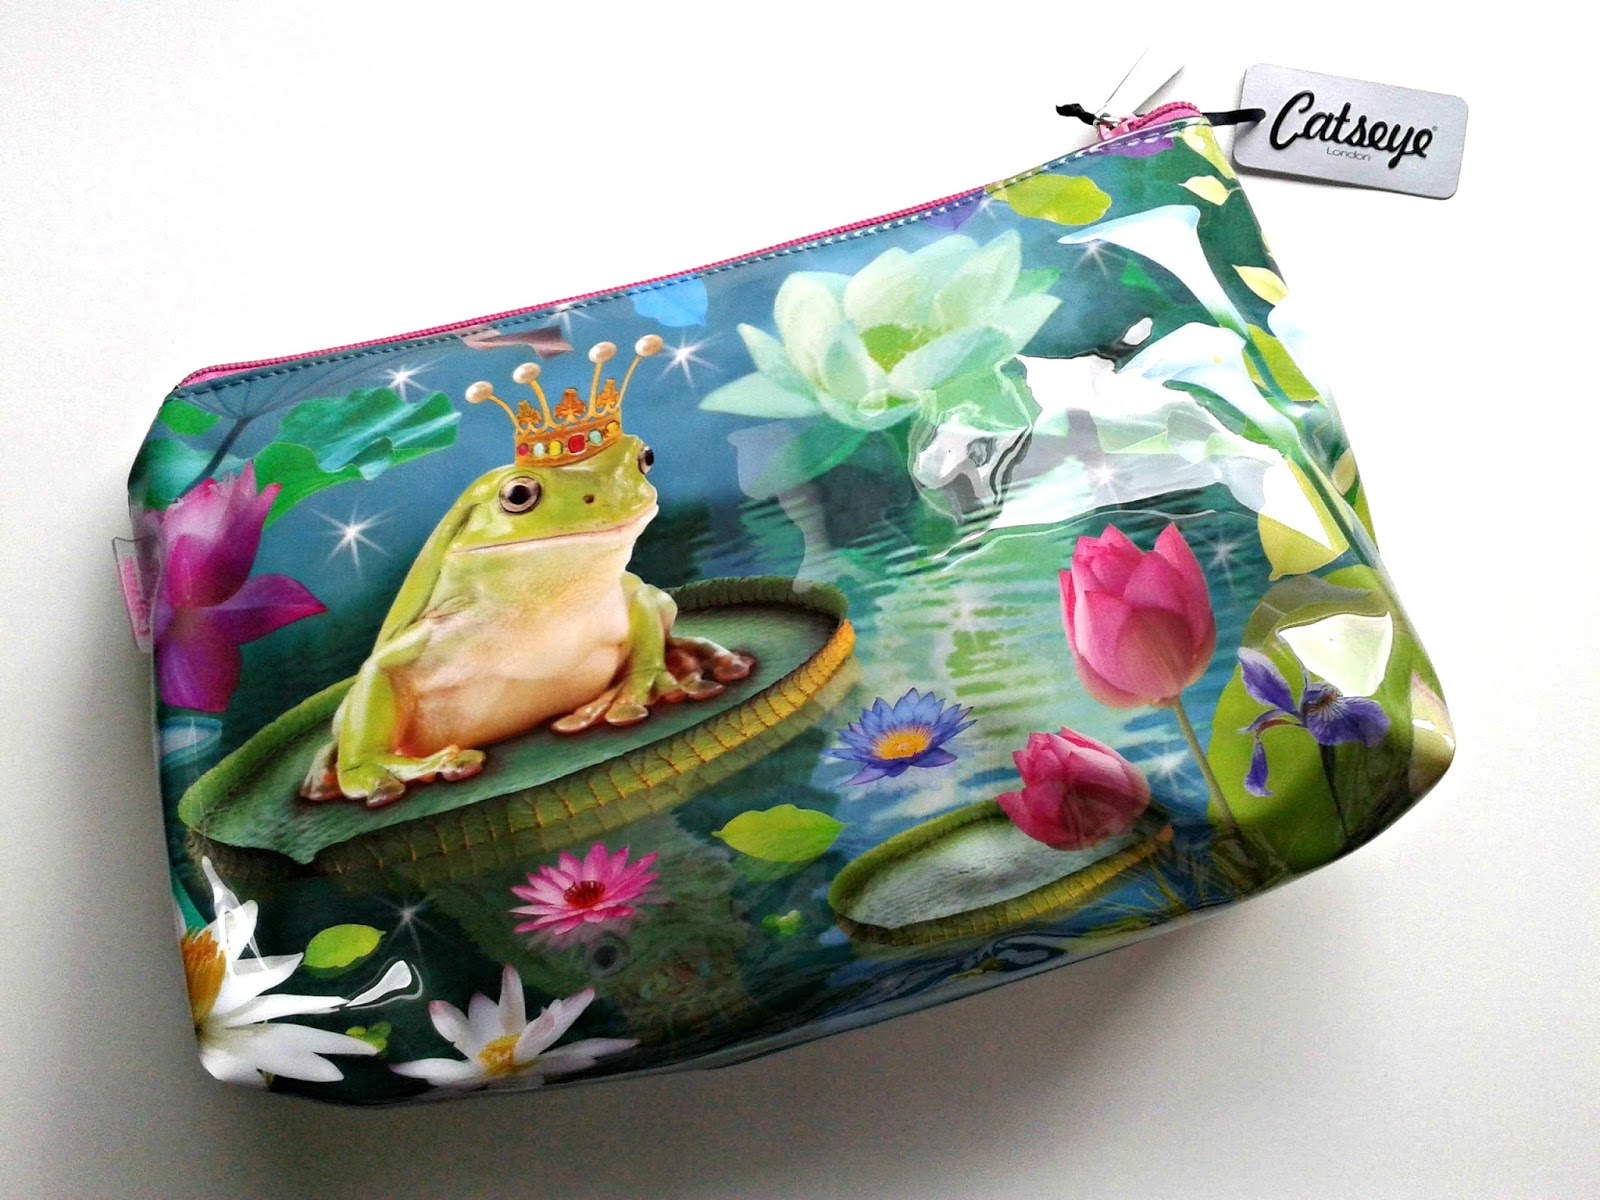 Catseye London Frog Prince Wash Bag Beauty Review Fairytale Collection